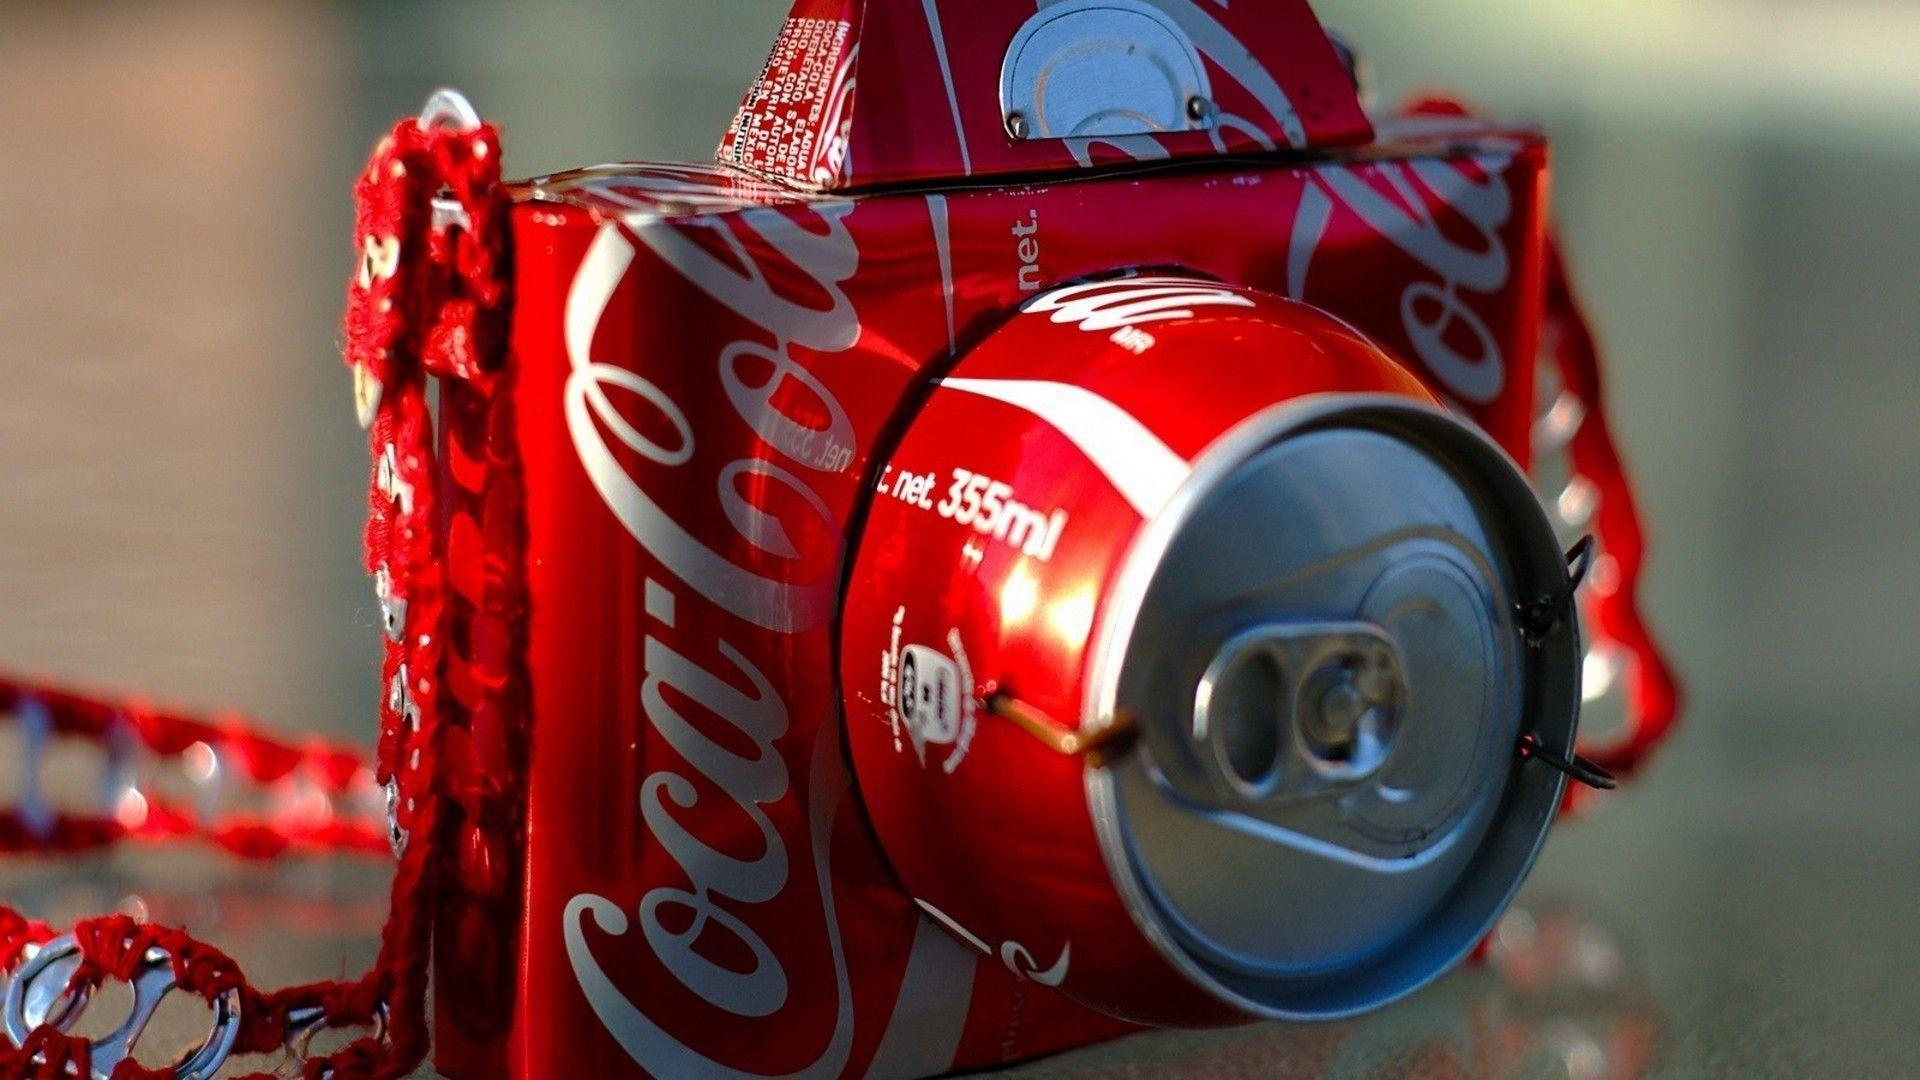 Cocacola artwork cameras soda cans wallpaper | AllWallpaper.in ...